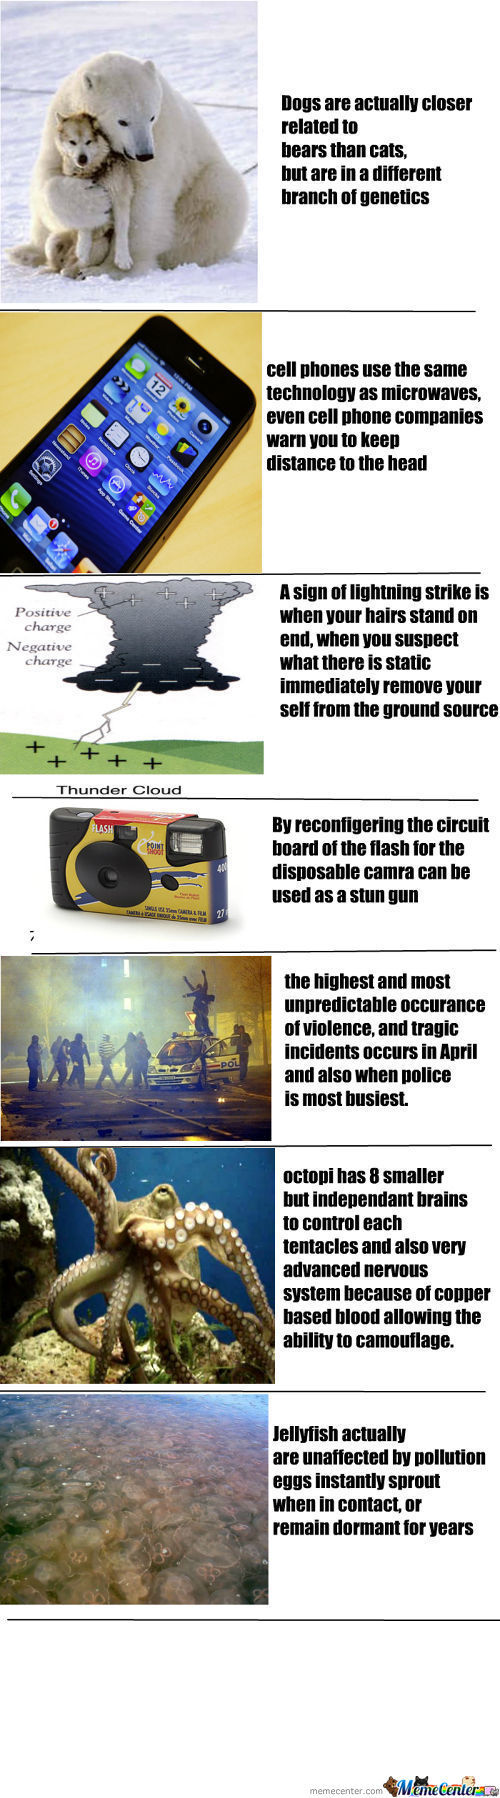 7 Interesting Facts Originally Made By Me